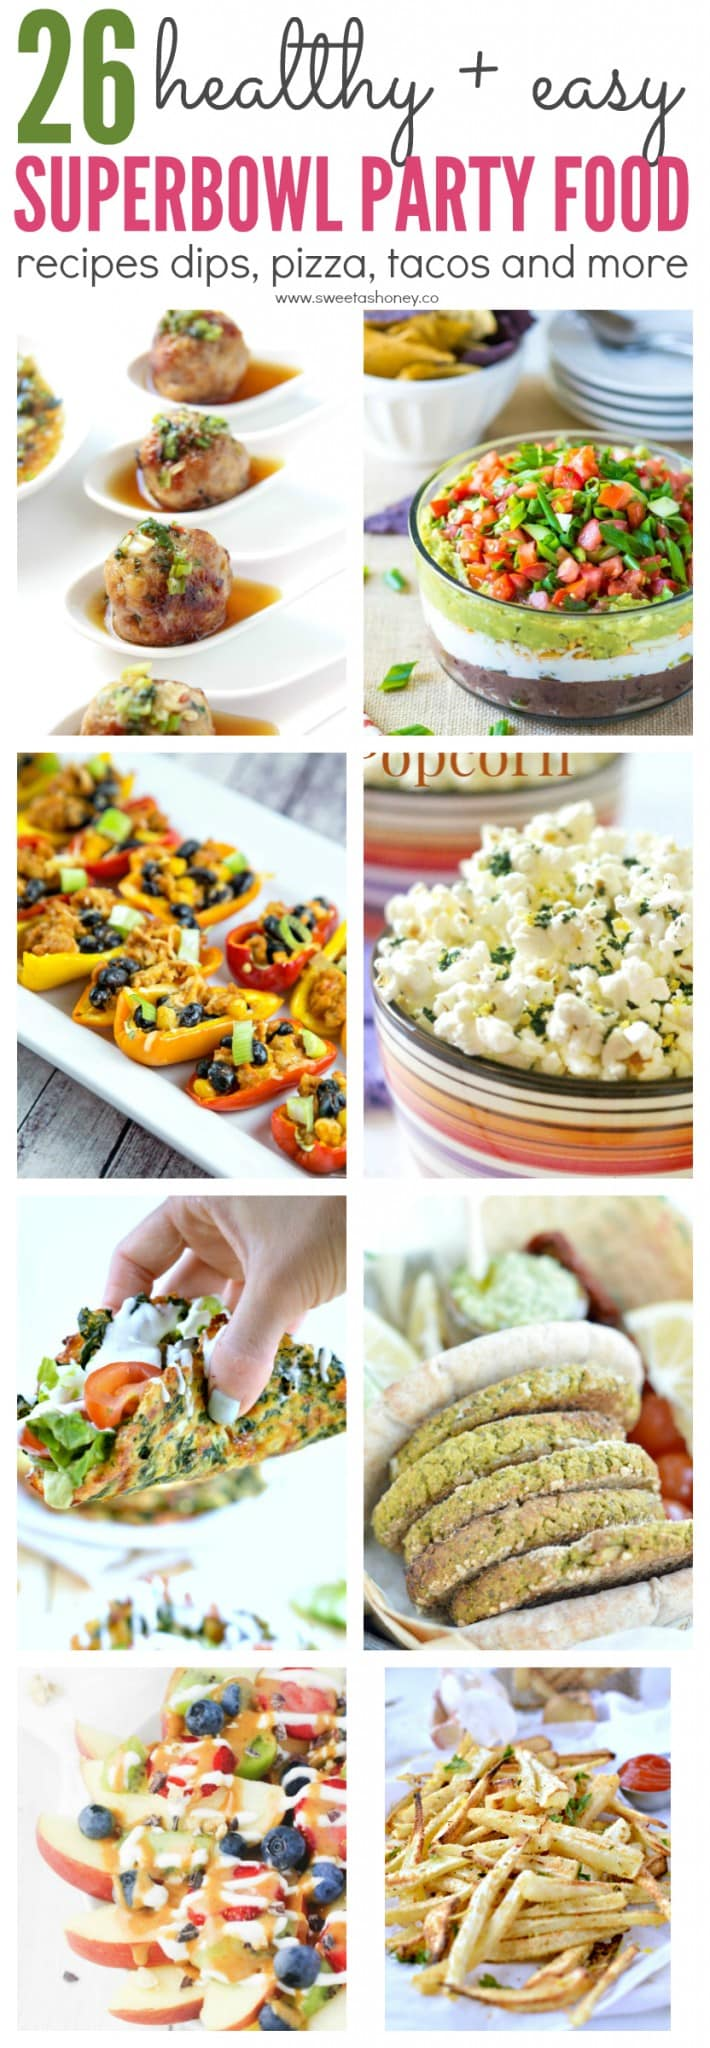 26 healthy superbowl snacks guilt free dips pizza sweetashoney 26 healthy superbowl party food recipes forumfinder Choice Image